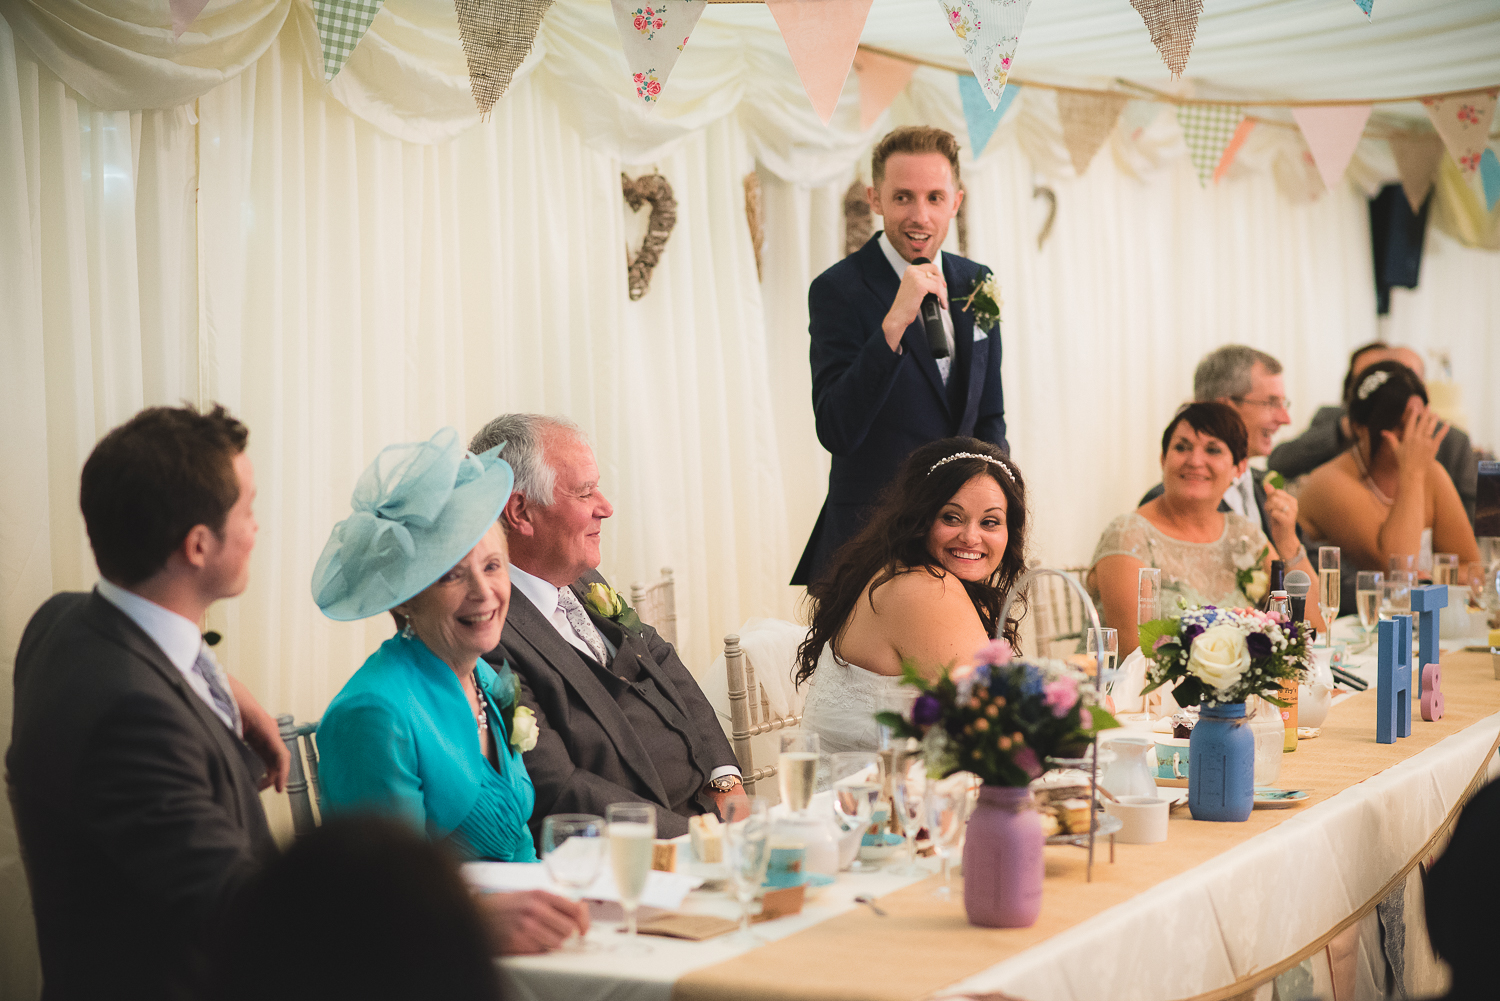 natural-documentary-wedding-photography-cardiff-south-wales-40.jpg